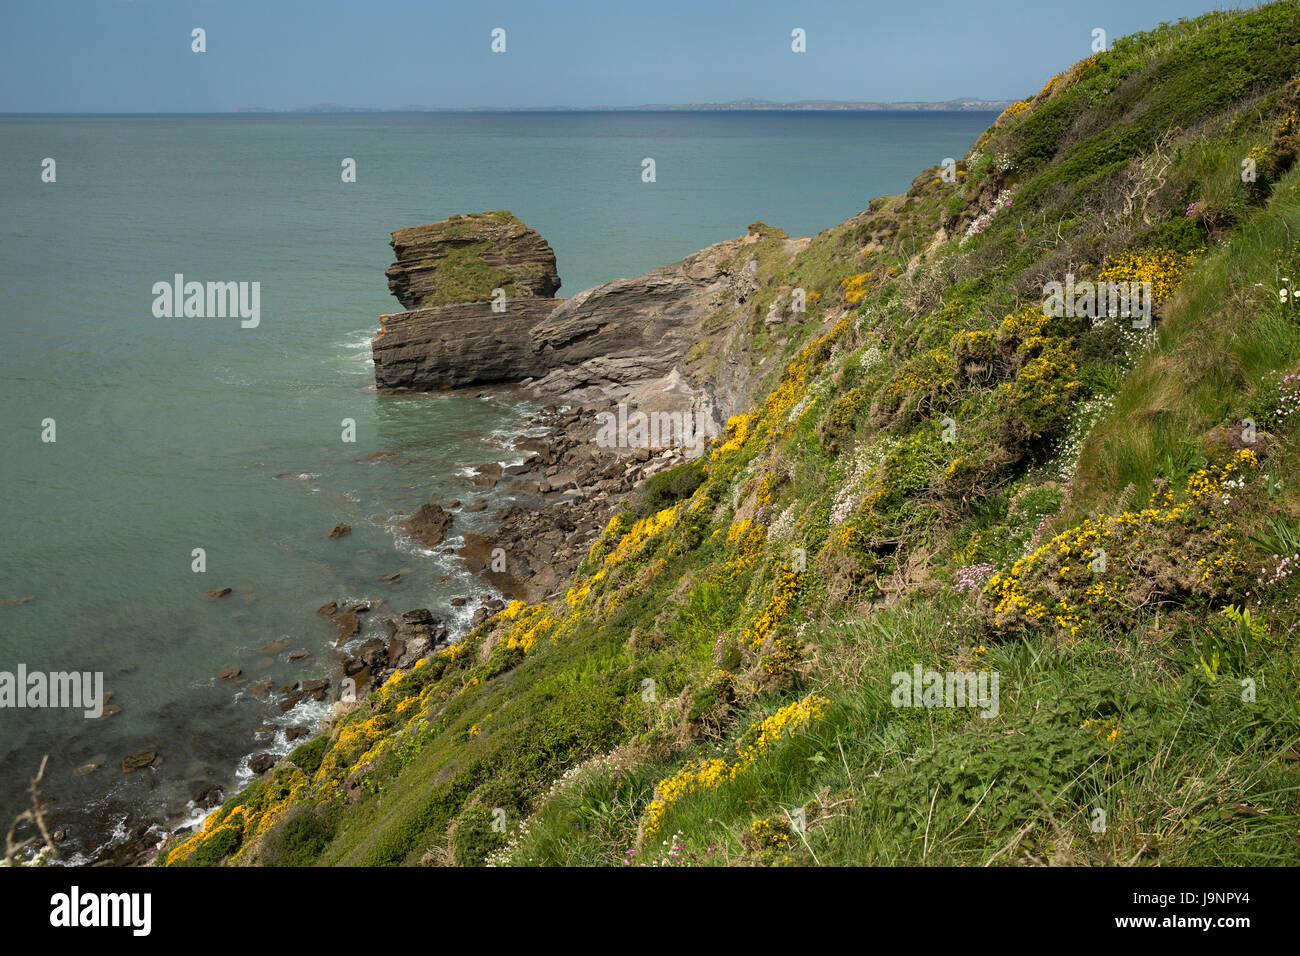 UK, Wales, Pembrokeshire, Broad Haven, wild flower studded cliff above St Bride's Bay - Stock Image